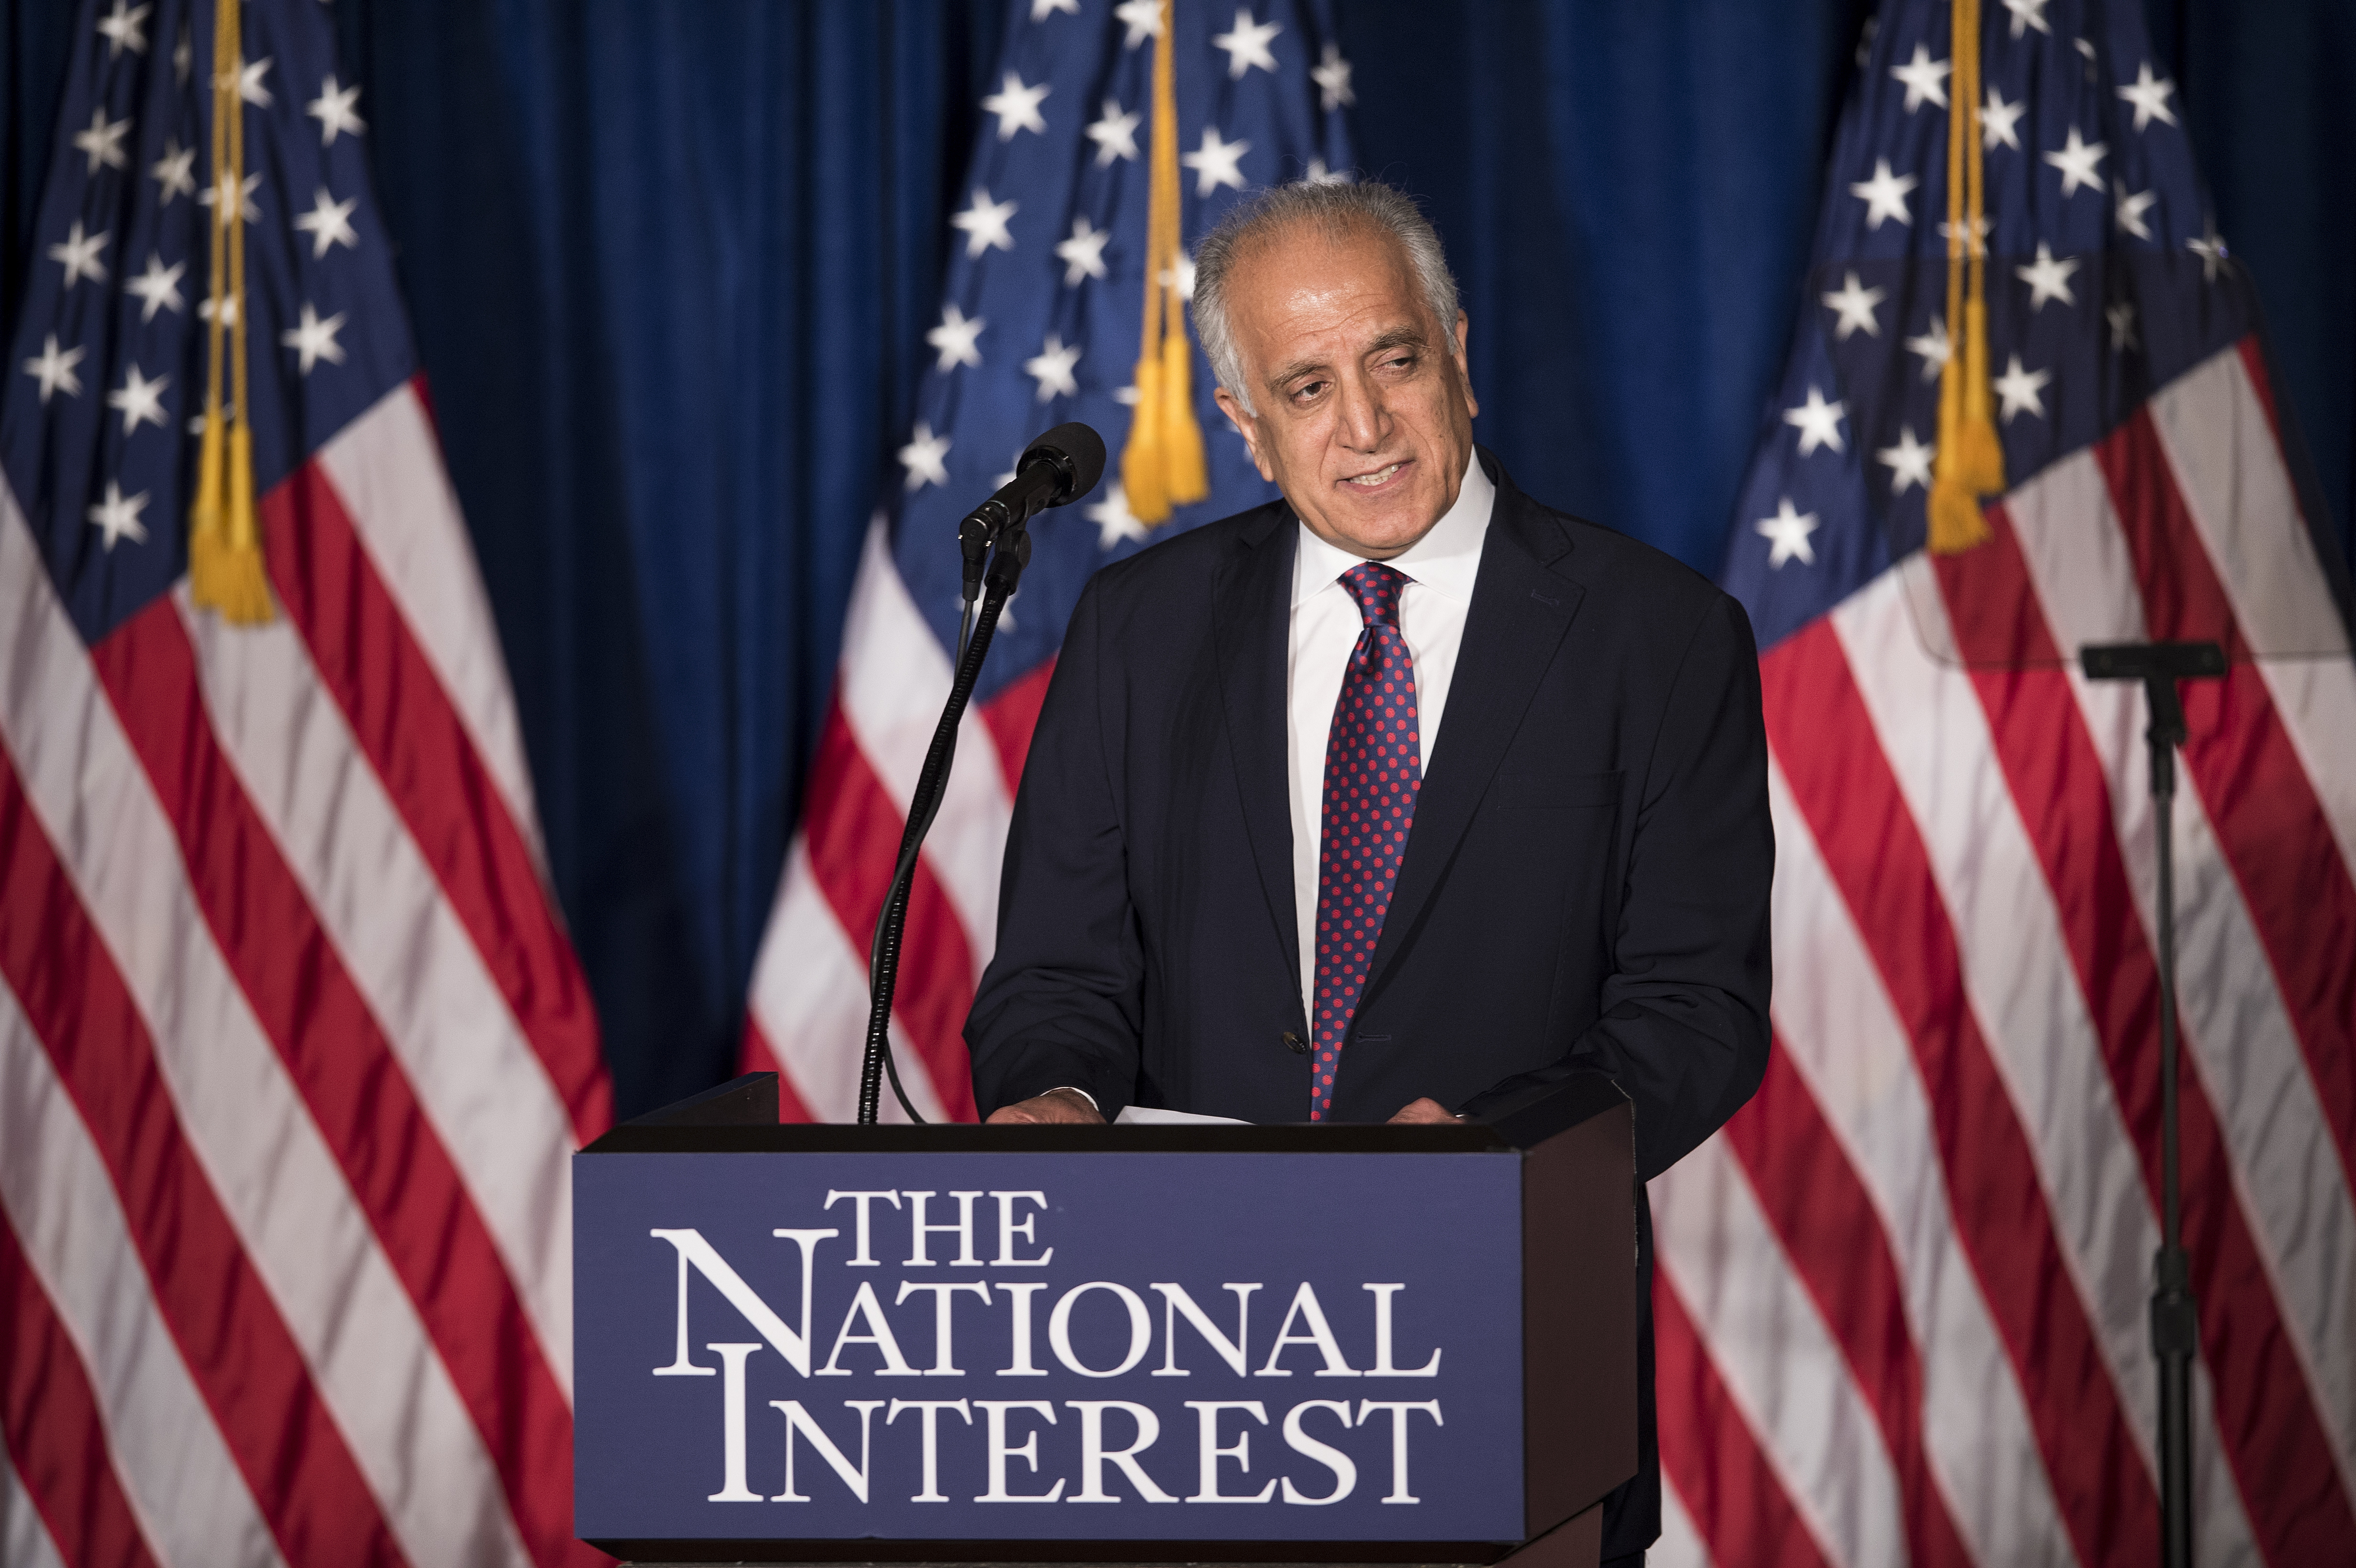 FILE - Former US Ambassador to Afghanistan Zalmay Khalilzad speaks about foreign policy at the Mayflower Hotel, April 27, 2016, in Washington. Khalilzad, now the U.S. Special Representative for Afghanistan Reconciliation, is on an 11-day trip to Afgh...